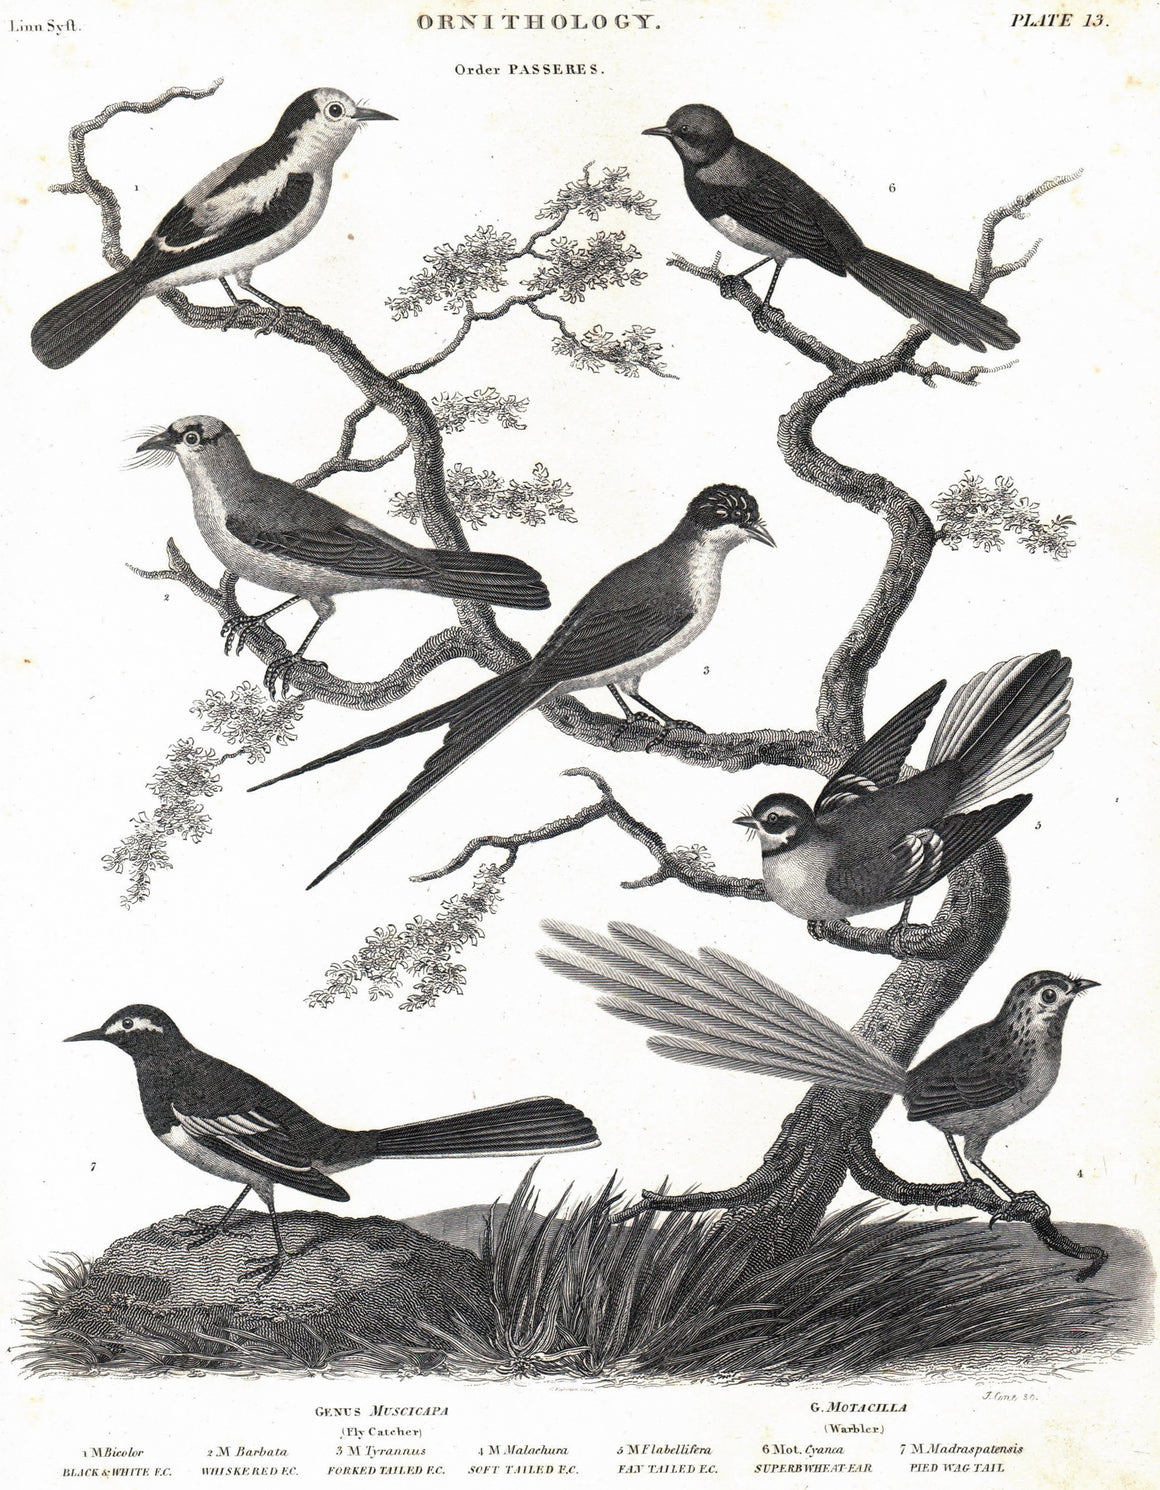 1834 Ornithology Plate 13